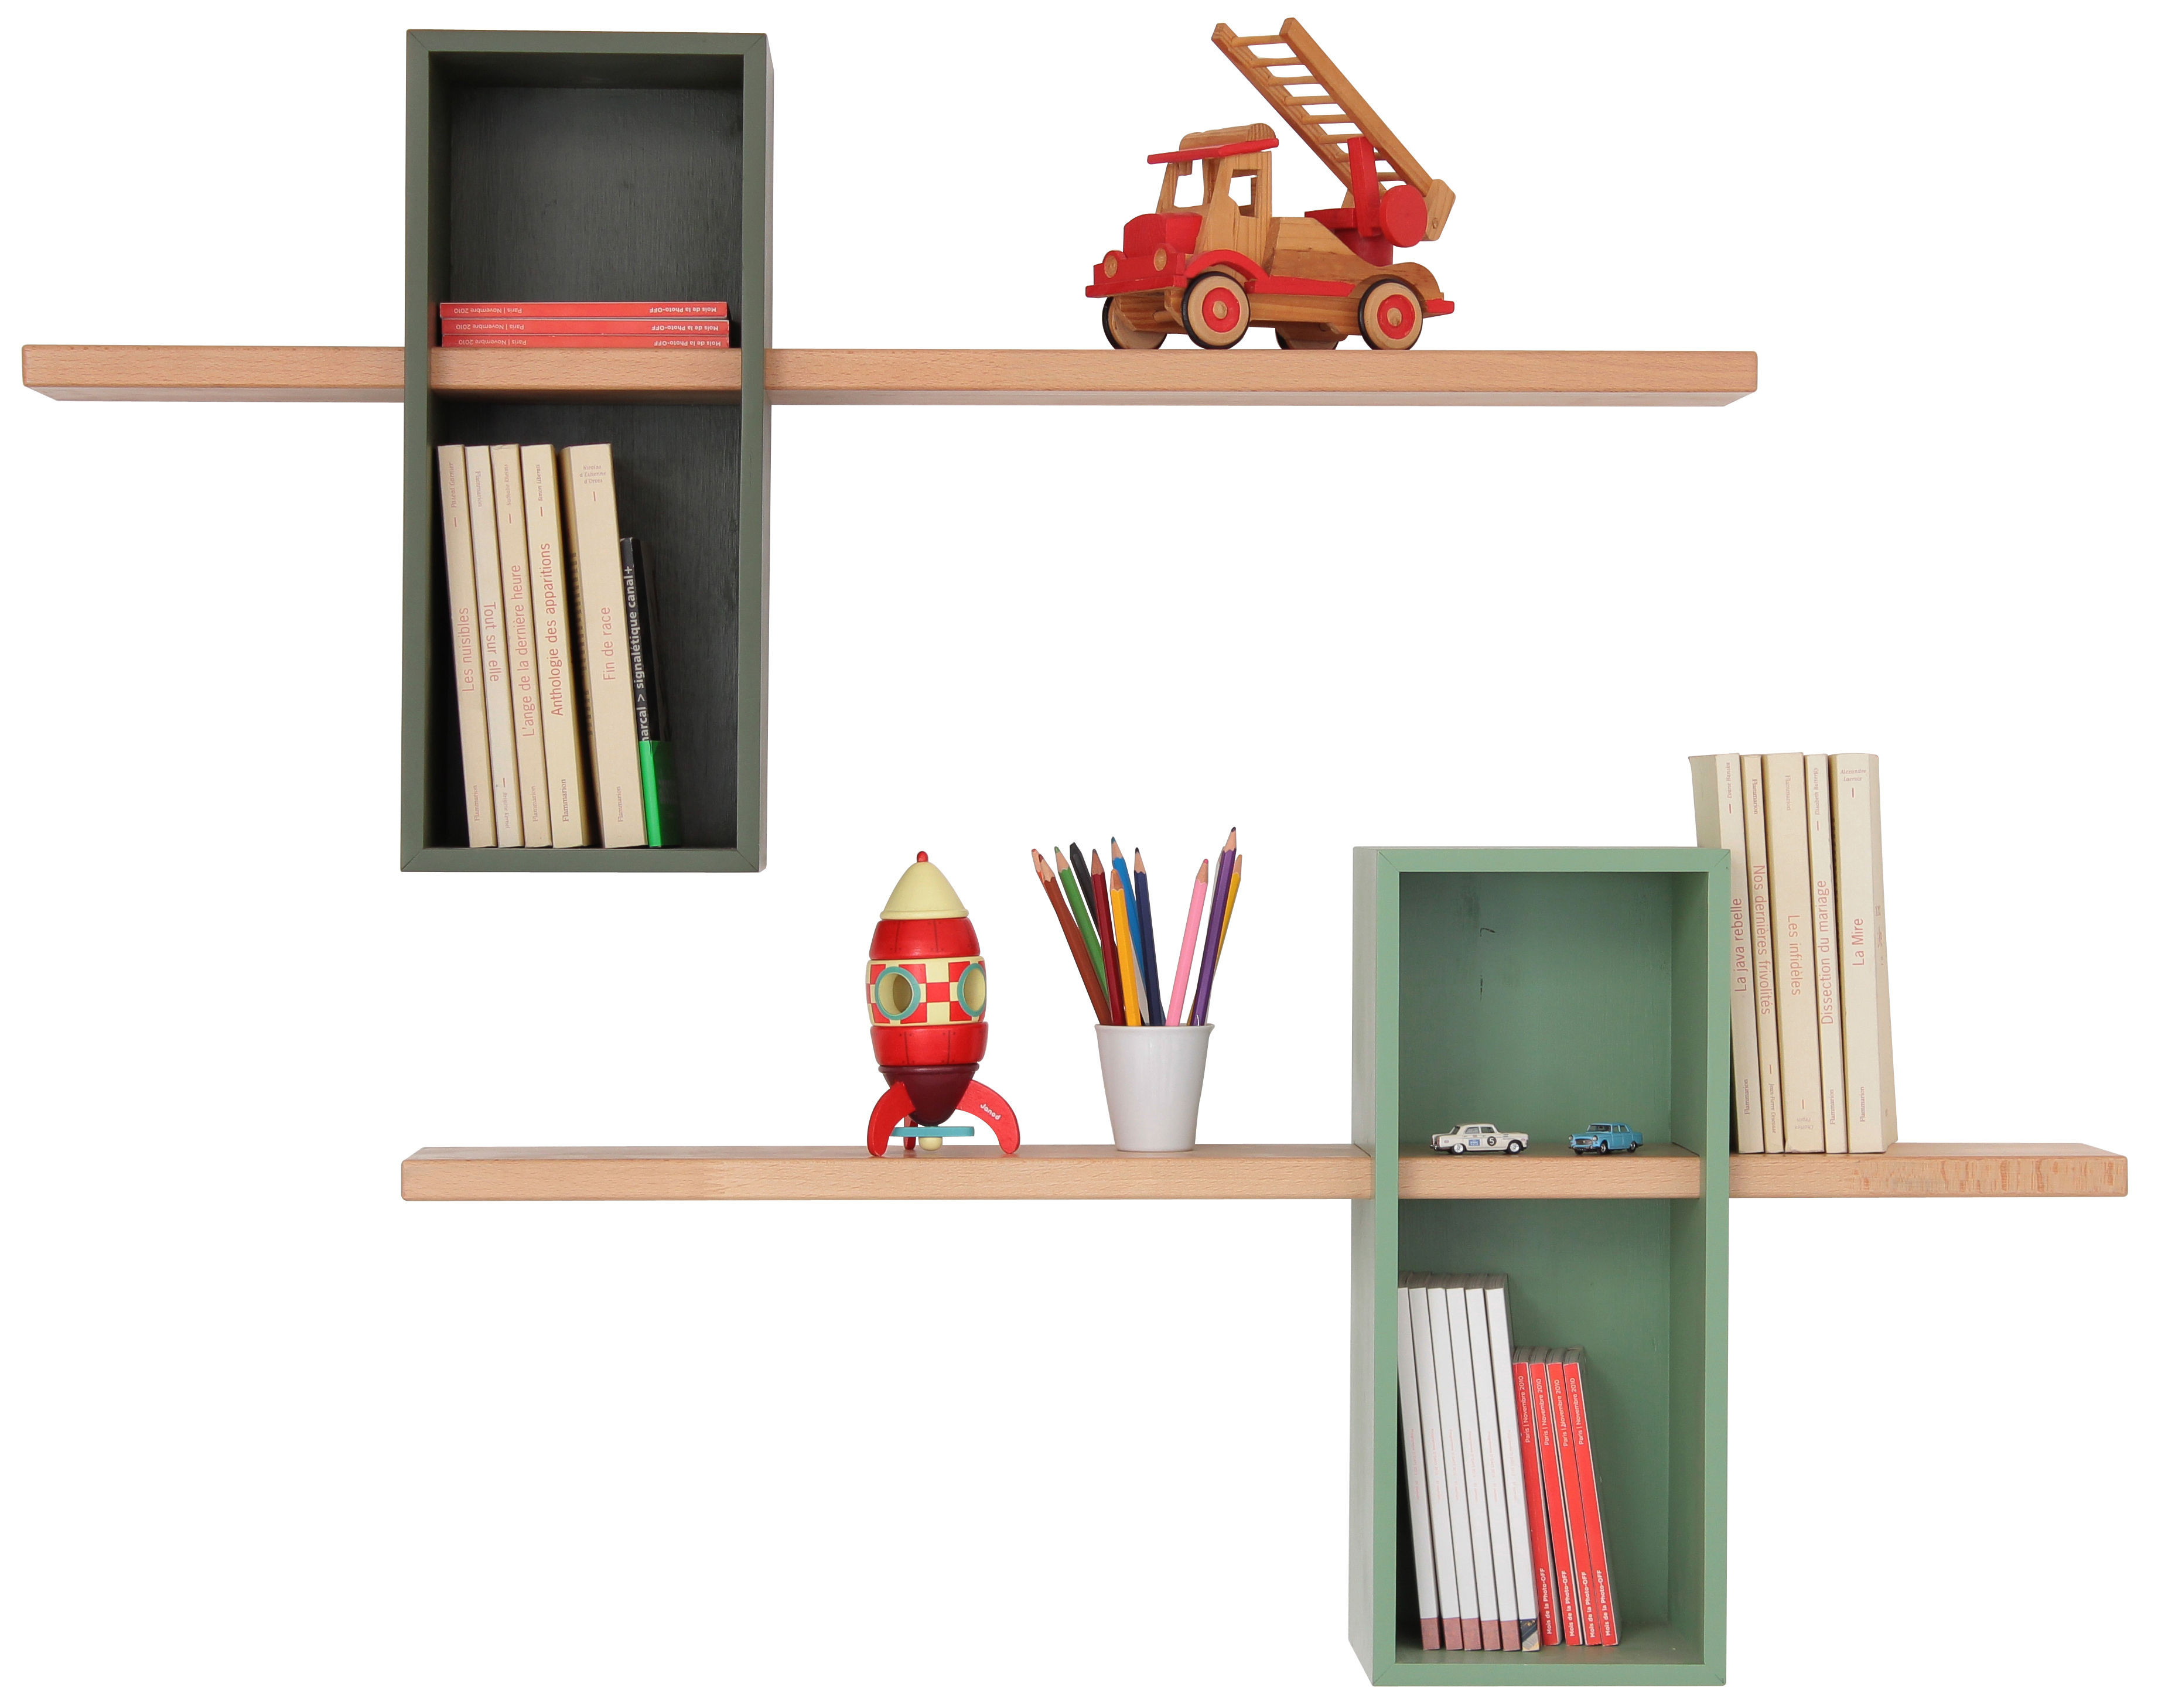 Furniture - Bookcases & Bookshelves - Max XL Shelf - Simple - 2 boxes + 2 shelves by Compagnie - Olive green / Light green - Natural beechwood, Painted MDF